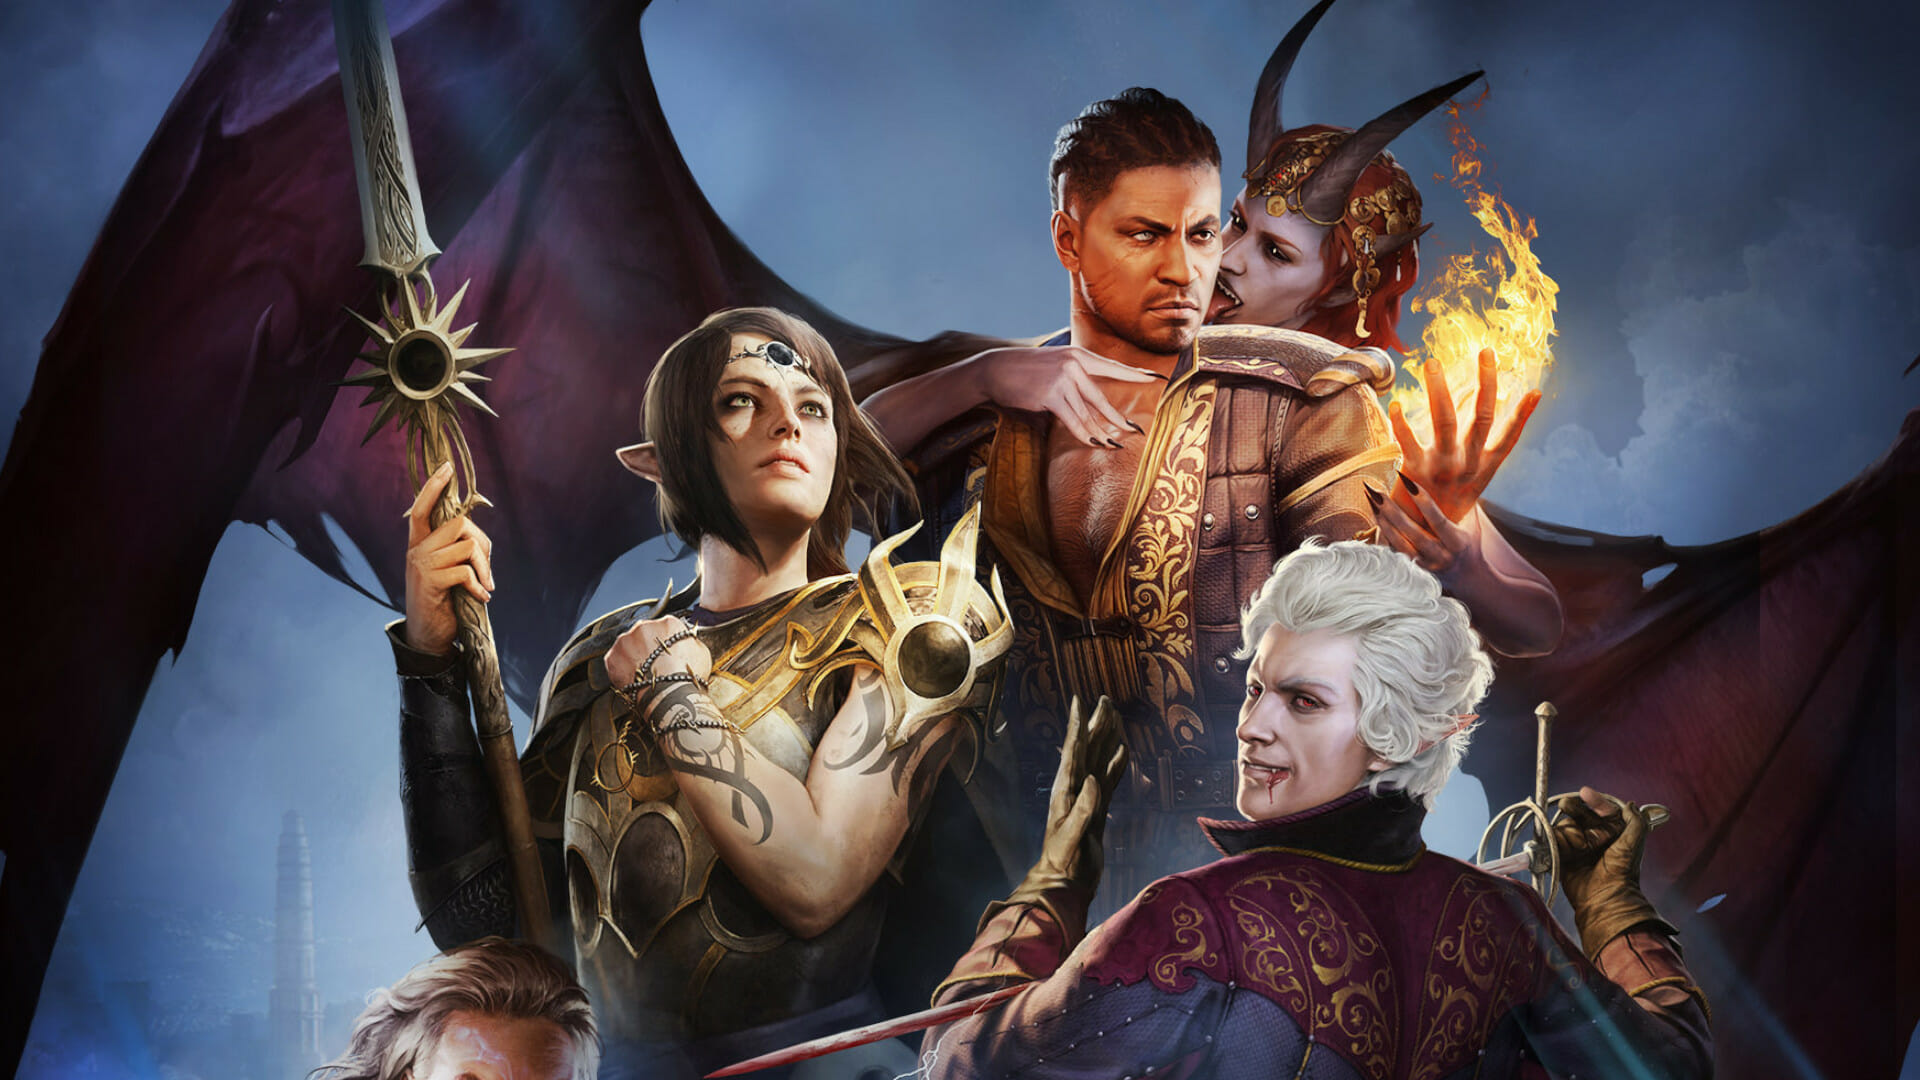 Dungeon Crawling and Rolling Dice in the Forgotten Realms With Baldur's Gate 3 3